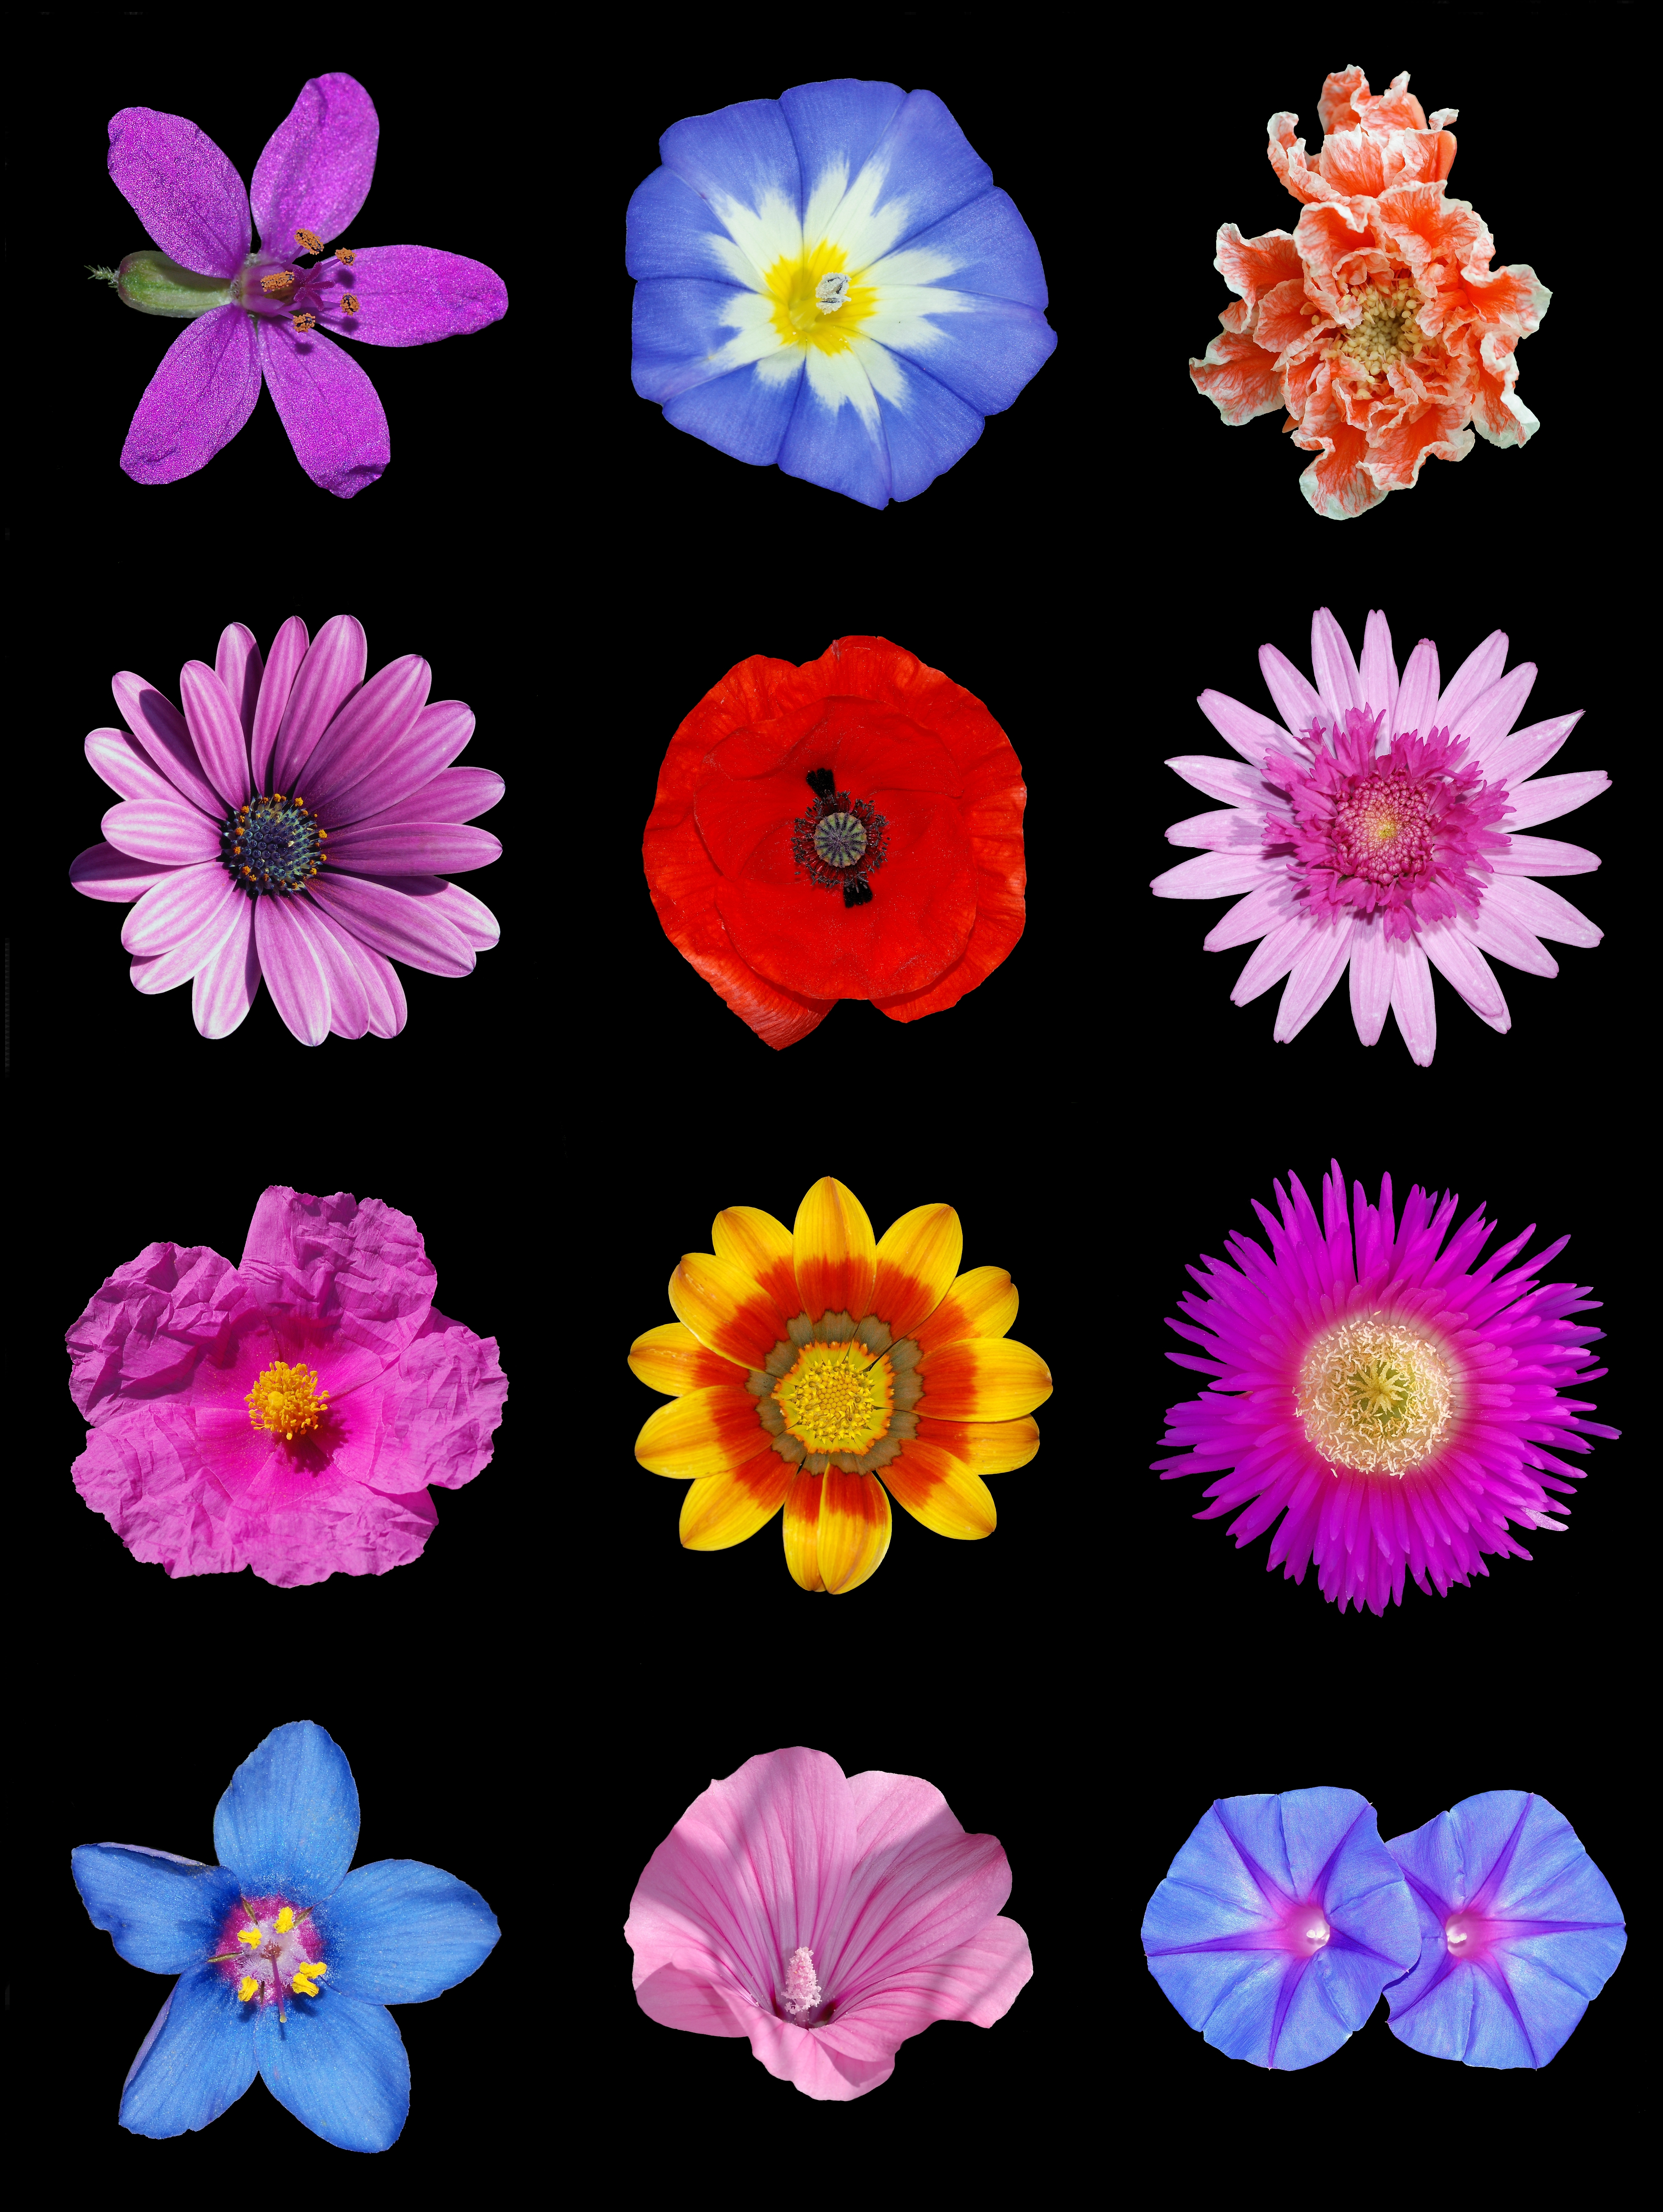 File:Colored flowers a.jpg - Wikimedia Commons